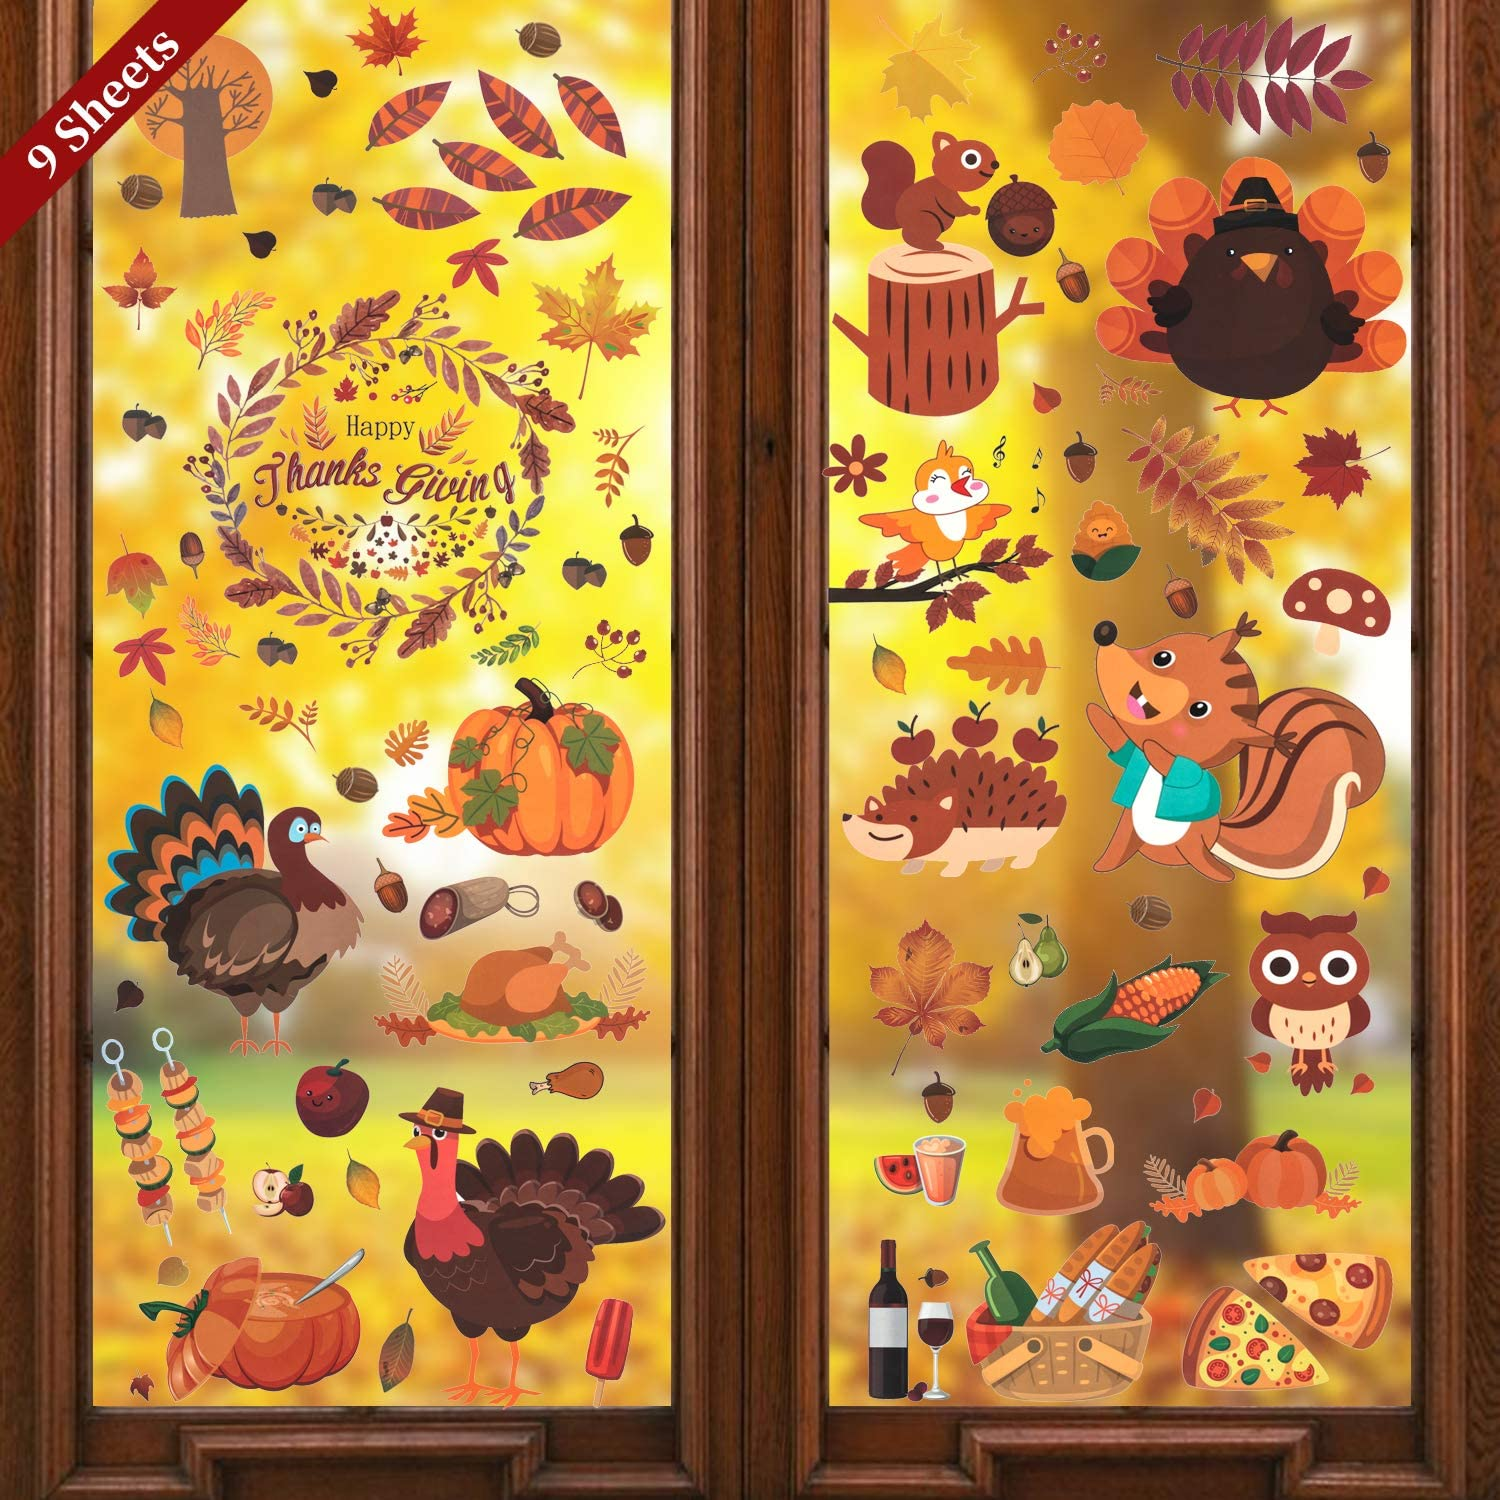 LessMo 176 Pcs Thanksgiving Clings Decor, Autumn Fall Window Stickers, Fall Maple Leaves Acorn Turkey Pumpkin Decals, for Kids Gift, Autumn Harvest Festival Decorations, Home Office Party Supplies